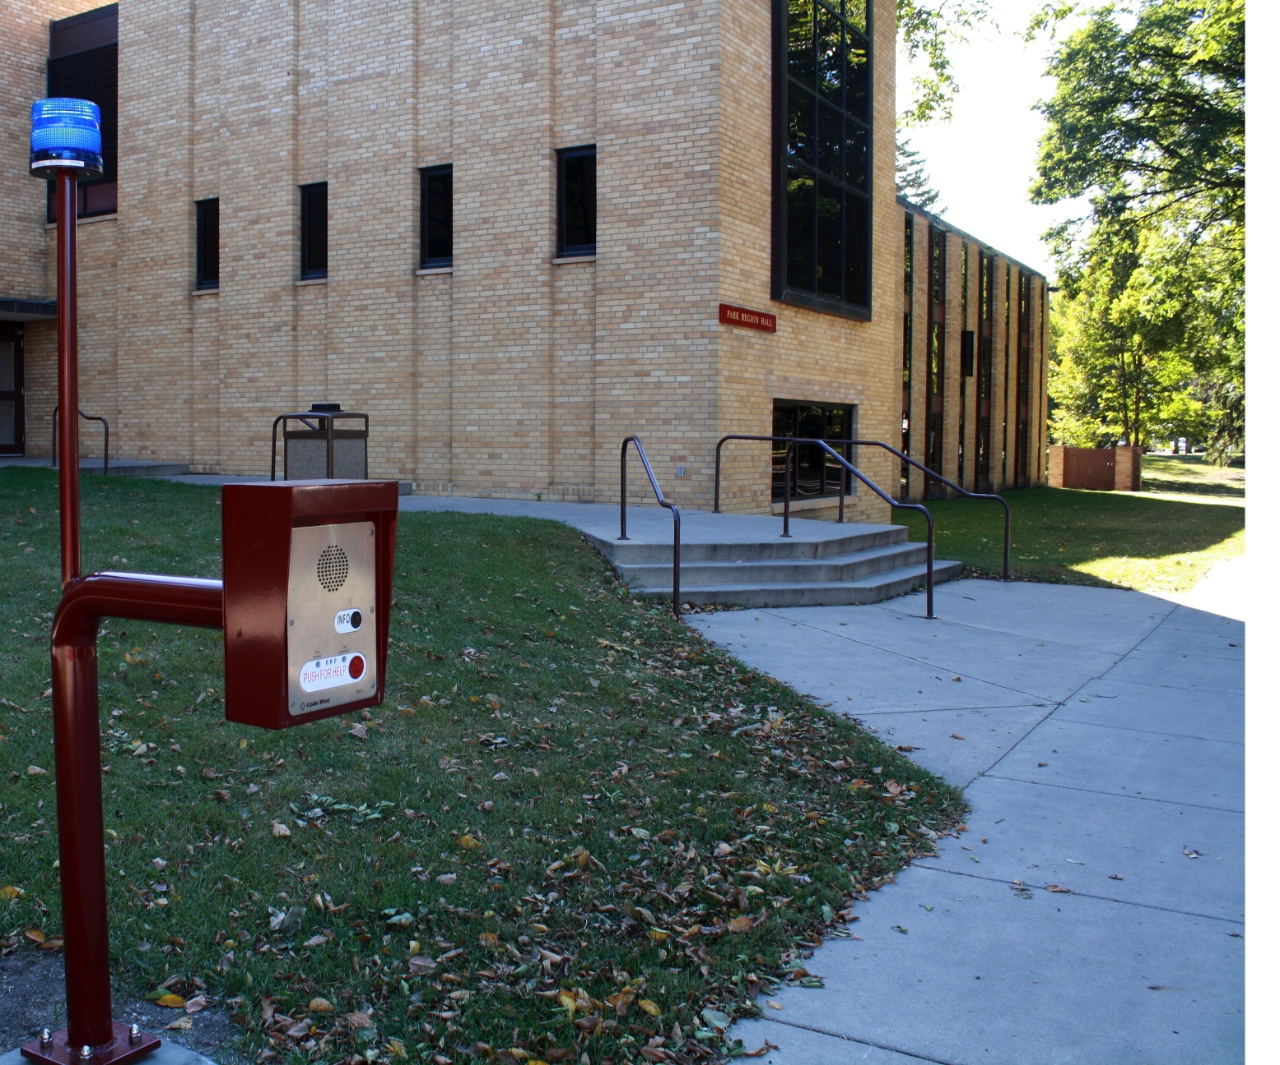 Photo by Rachel Webster. This new Code Blue emergency box is located in front of Park Region Hall. Passerby's can push the red button for emergency help.